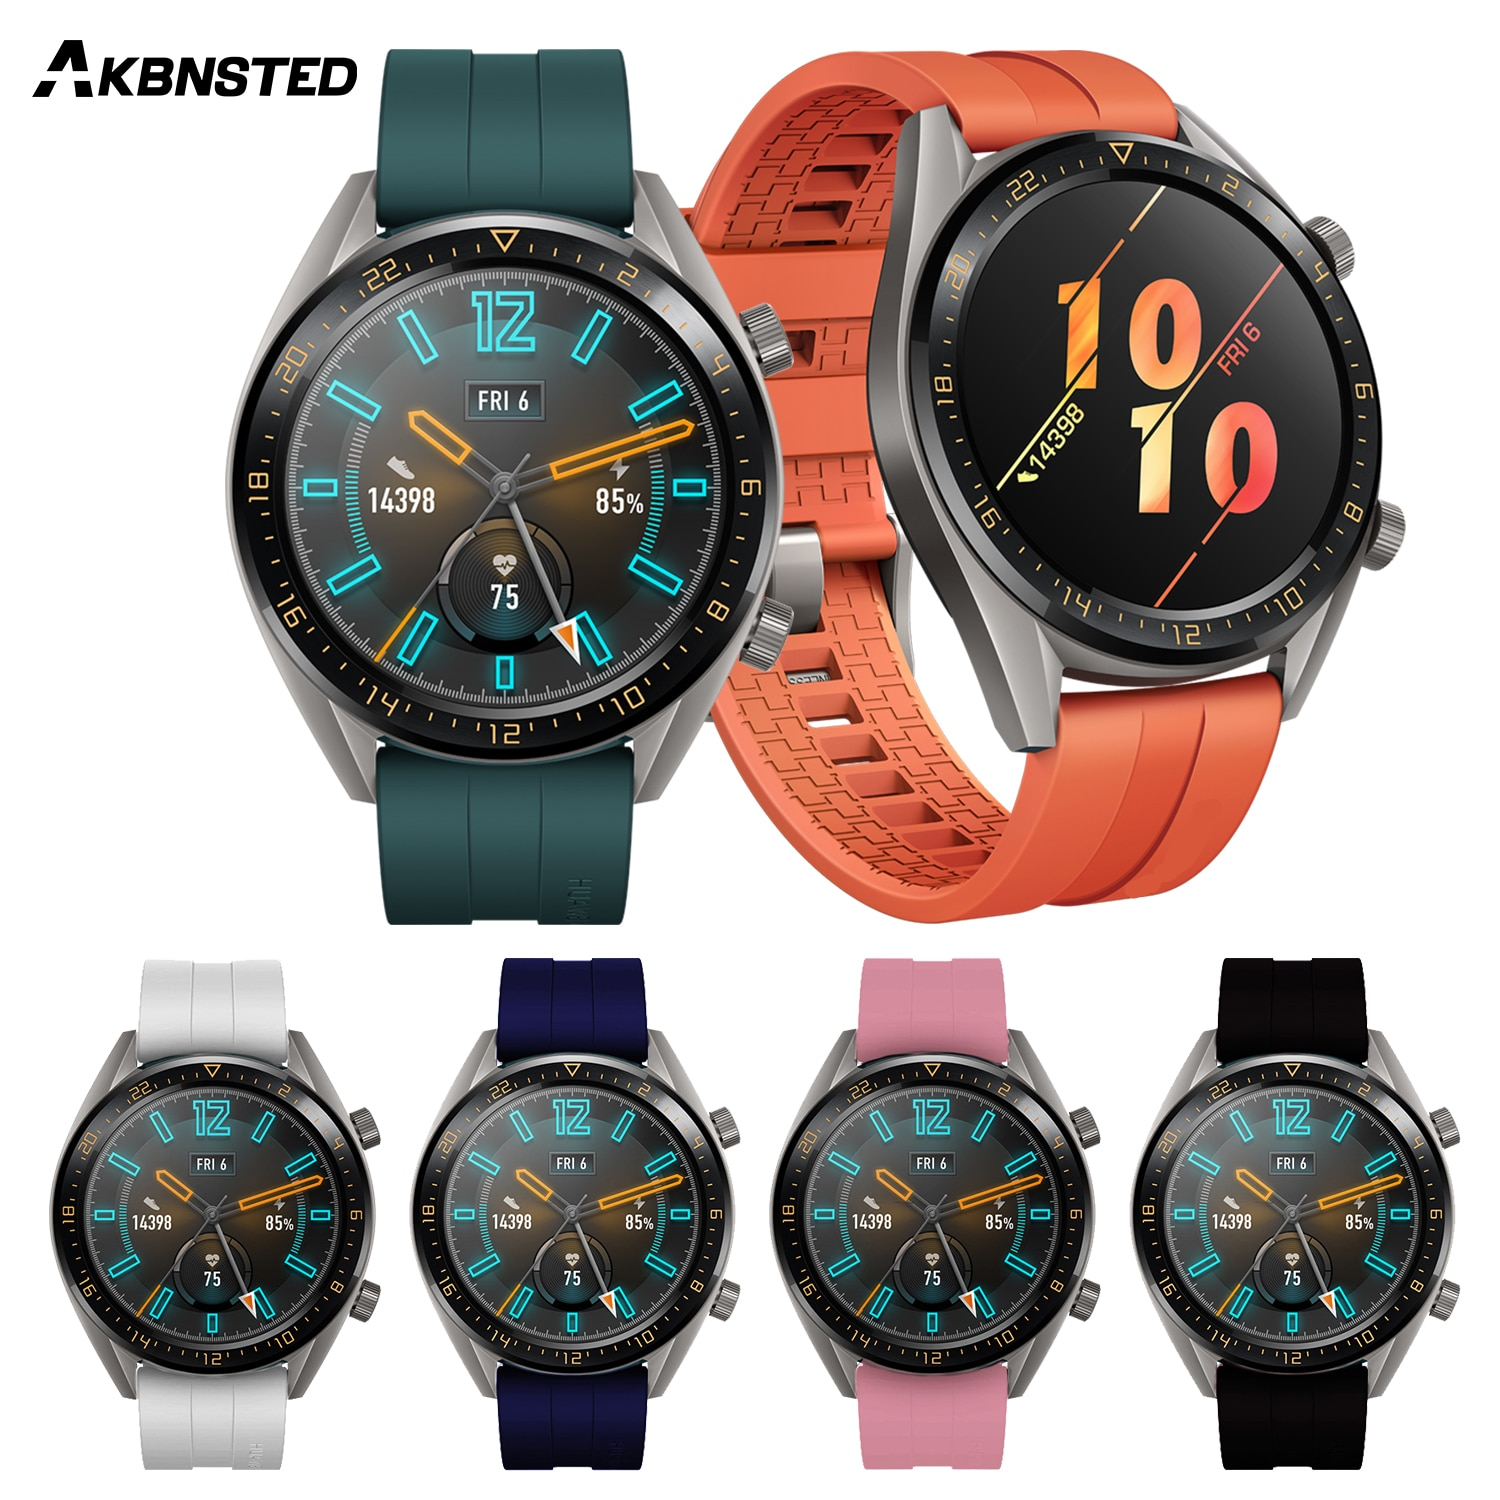 AKBNSTED 22mm Replacement Soft Silicone Watch Strap For Huami Amazfit Stratos 3/Huawei Watch GT2 Wristband Smart Sports Watch часы amazfit stratos smart sports watch 2 a1619 черный